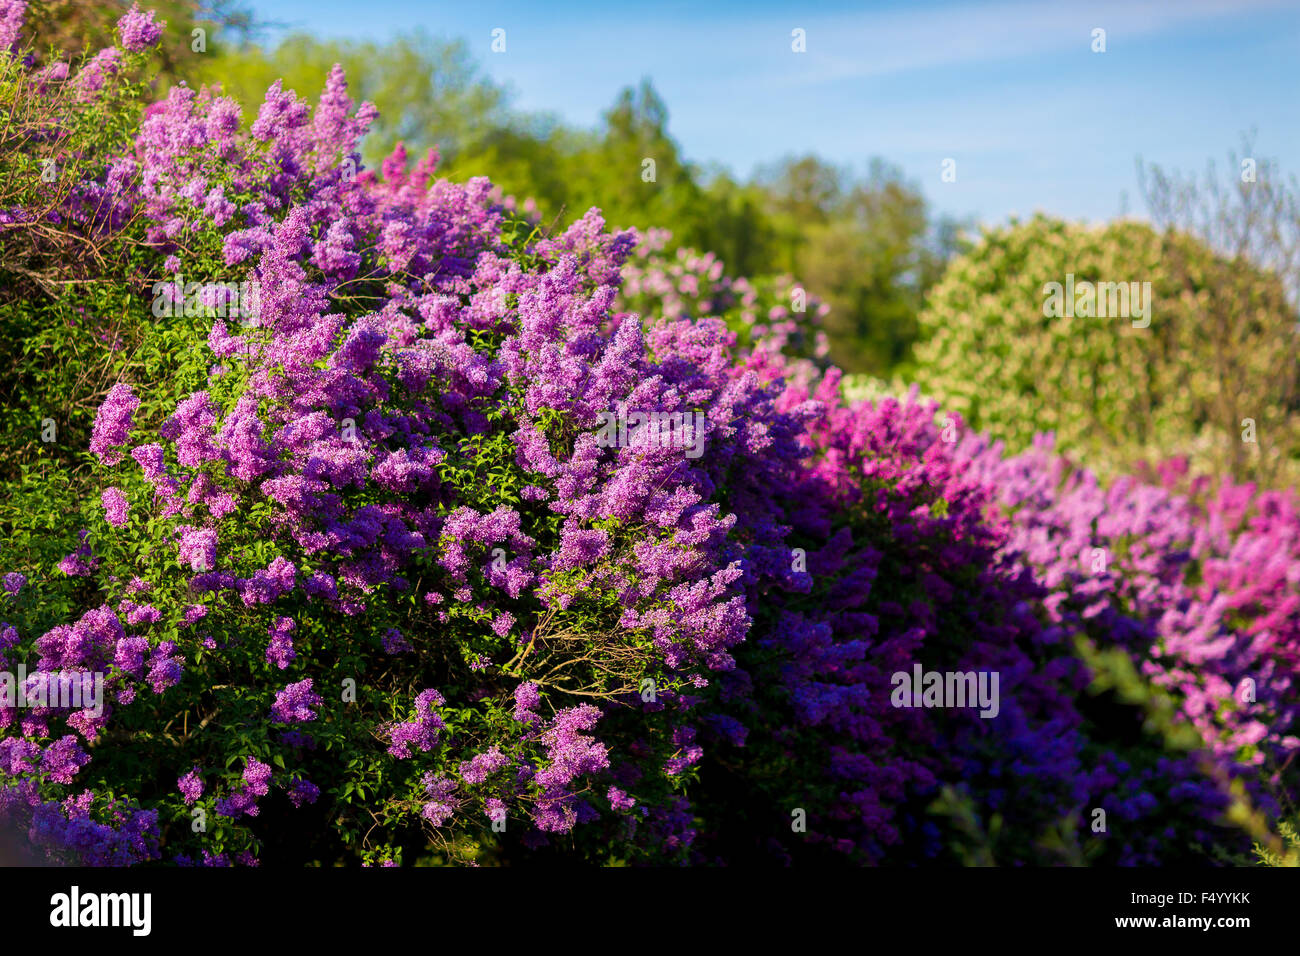 Bunch of violet lilac flower in sunny spring day in front of blue sky - Stock Image